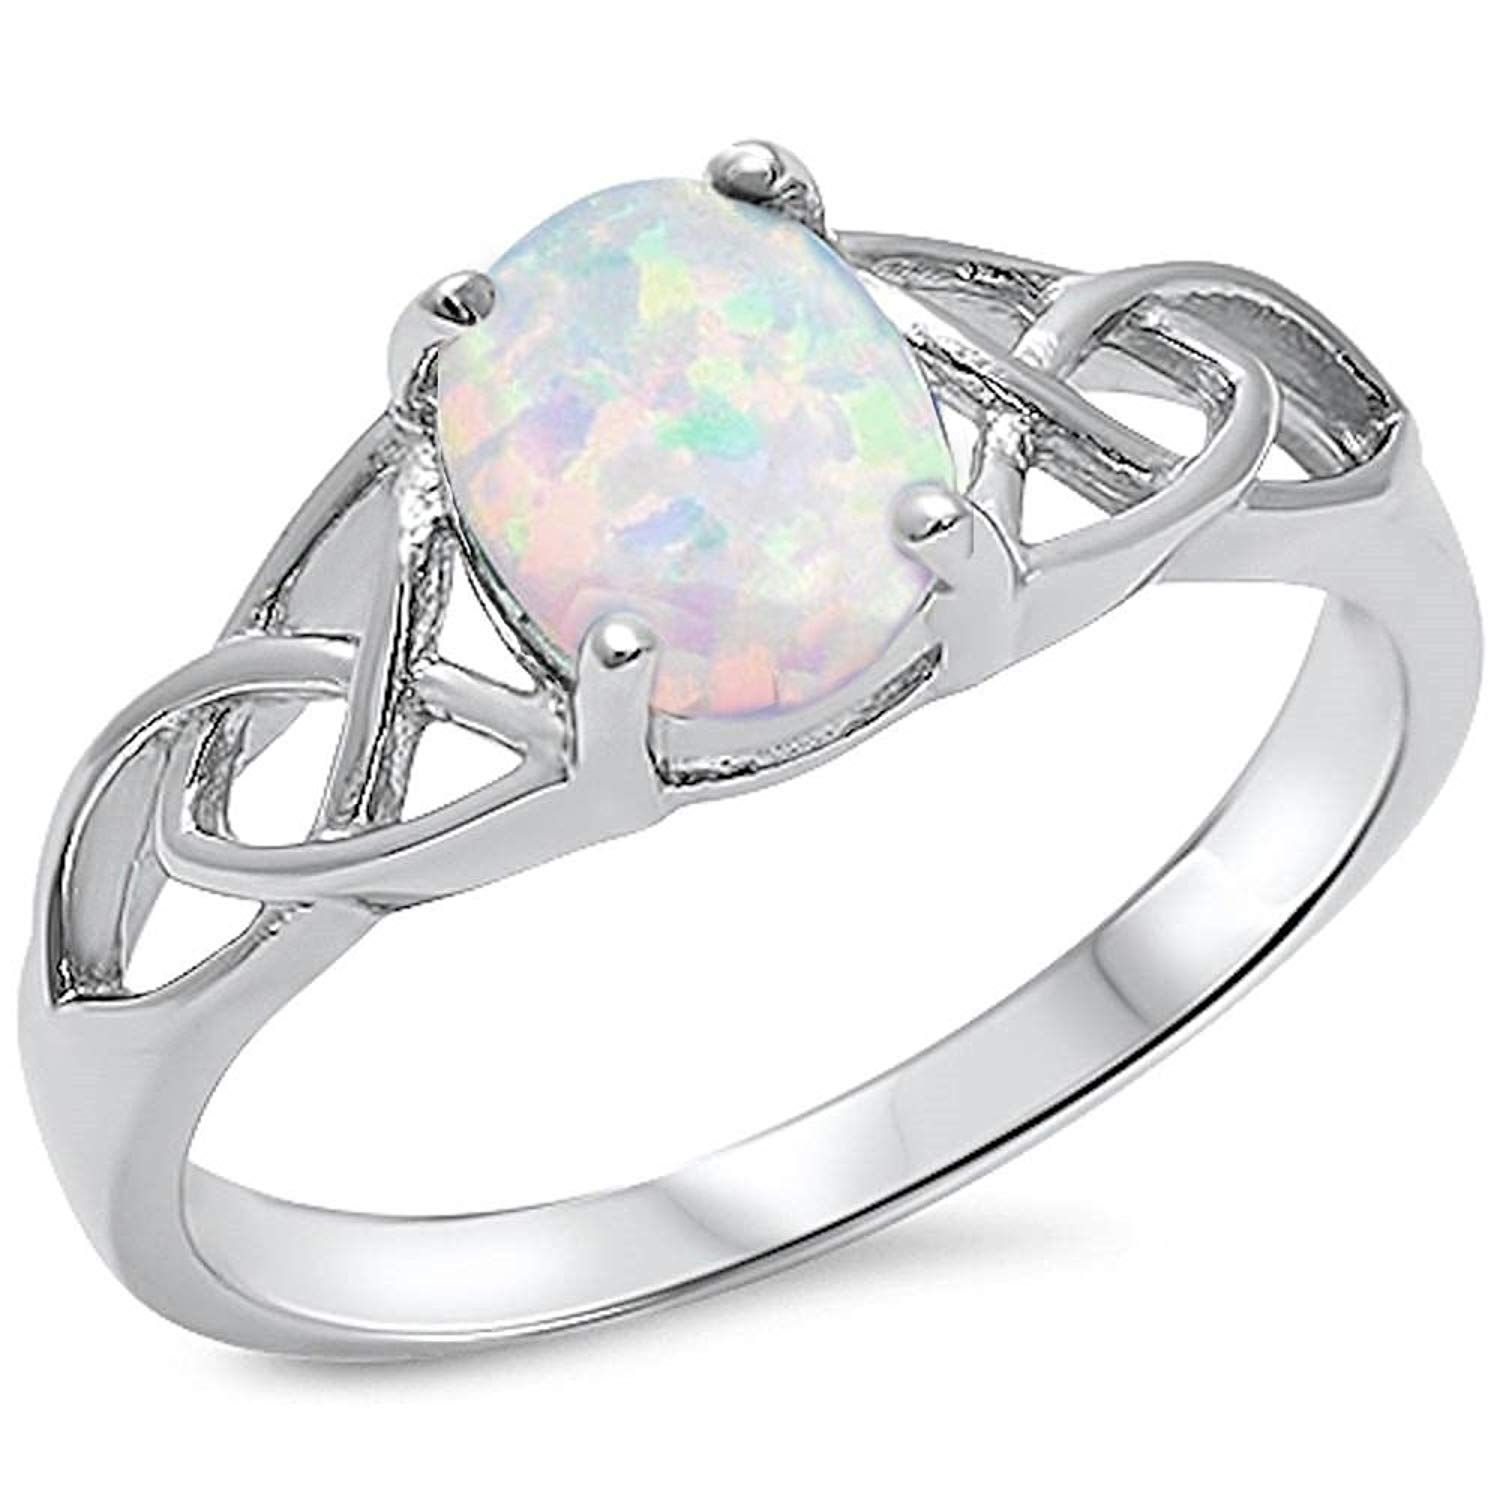 Oval Halo Cz Wedding Set .925 Sterling Silver Ring Sizes 4-11